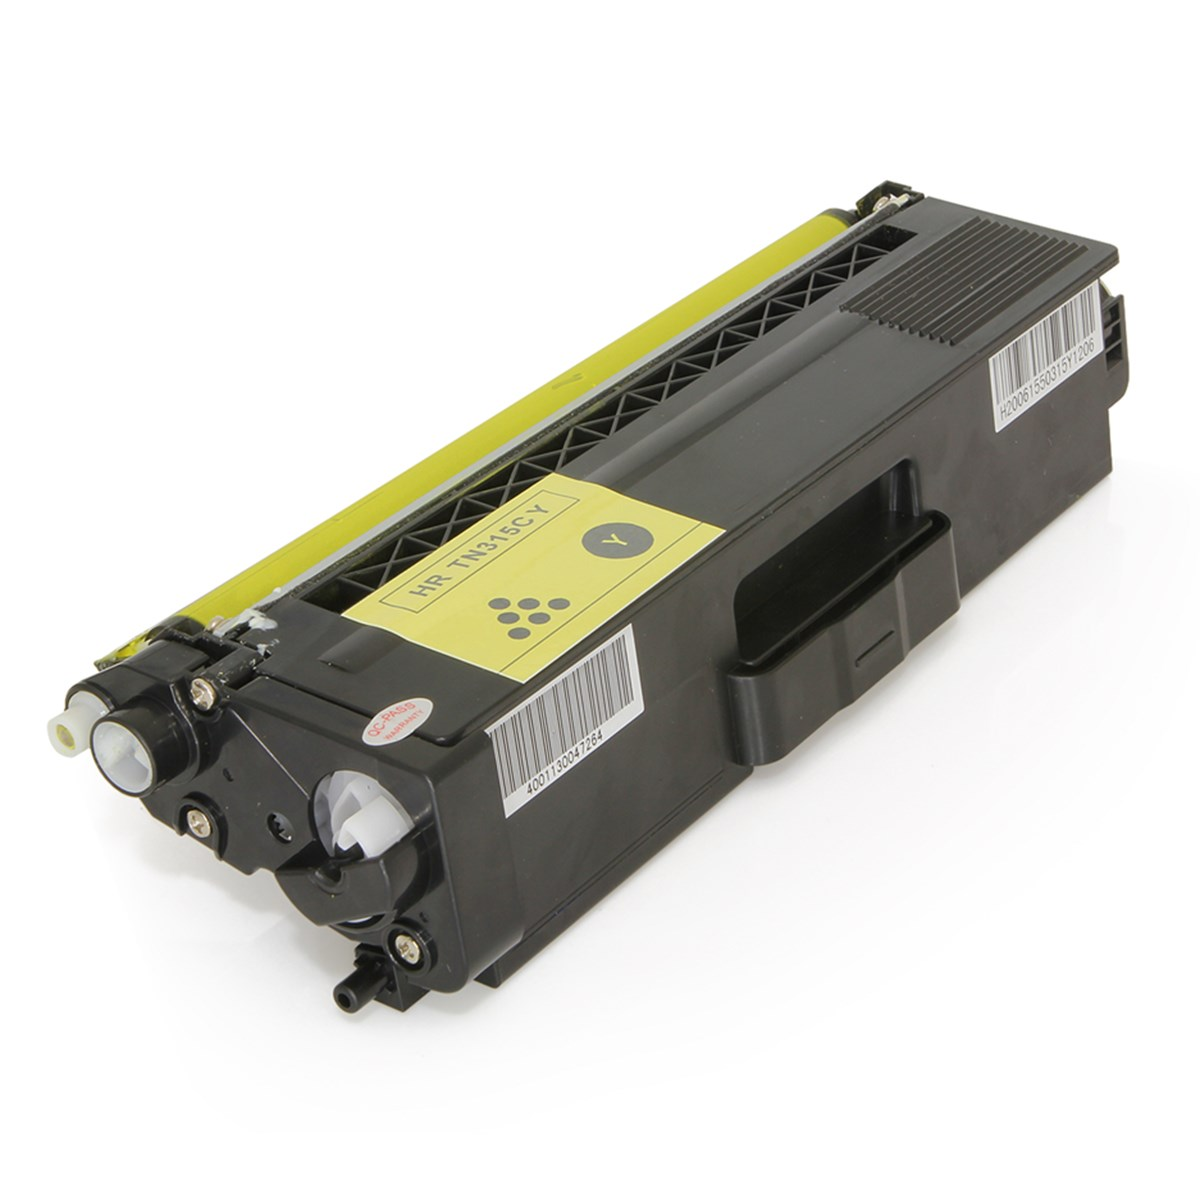 Compativel: Toner novasupri Brother TN315 MFC9970 MFC9460 HL4140 HL4150 HL4570 Amarelo